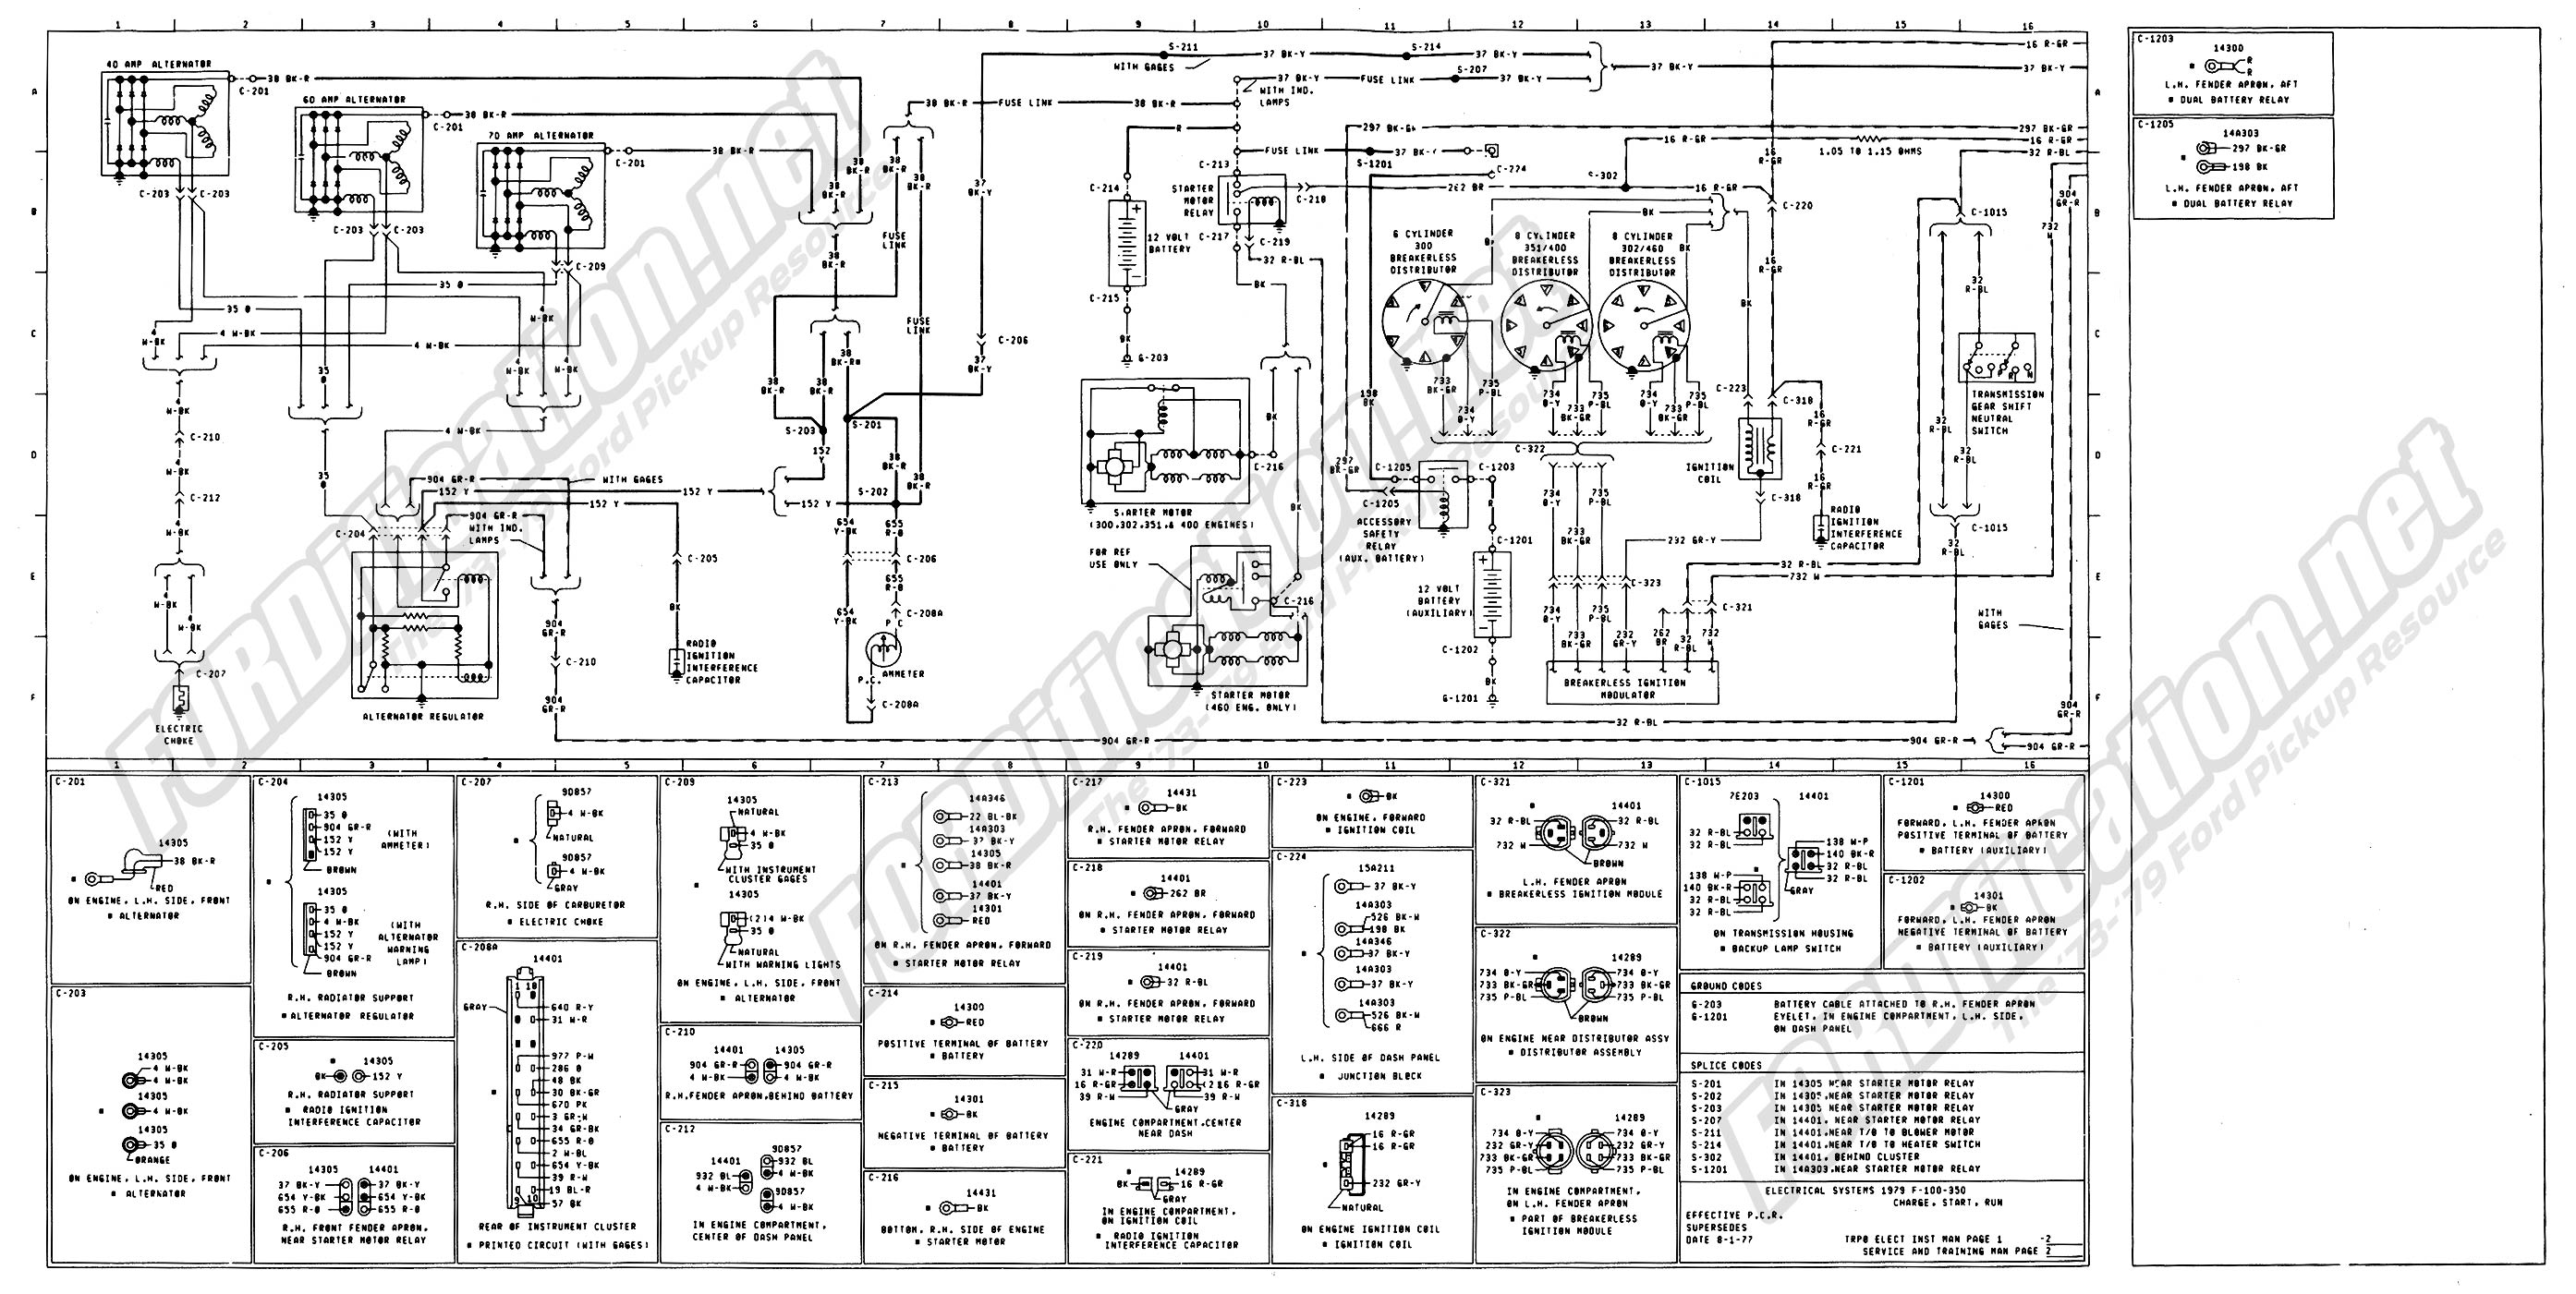 wiring_79master_2of9 1973 1979 ford truck wiring diagrams & schematics fordification net 1999 ford f350 wiring diagram at arjmand.co